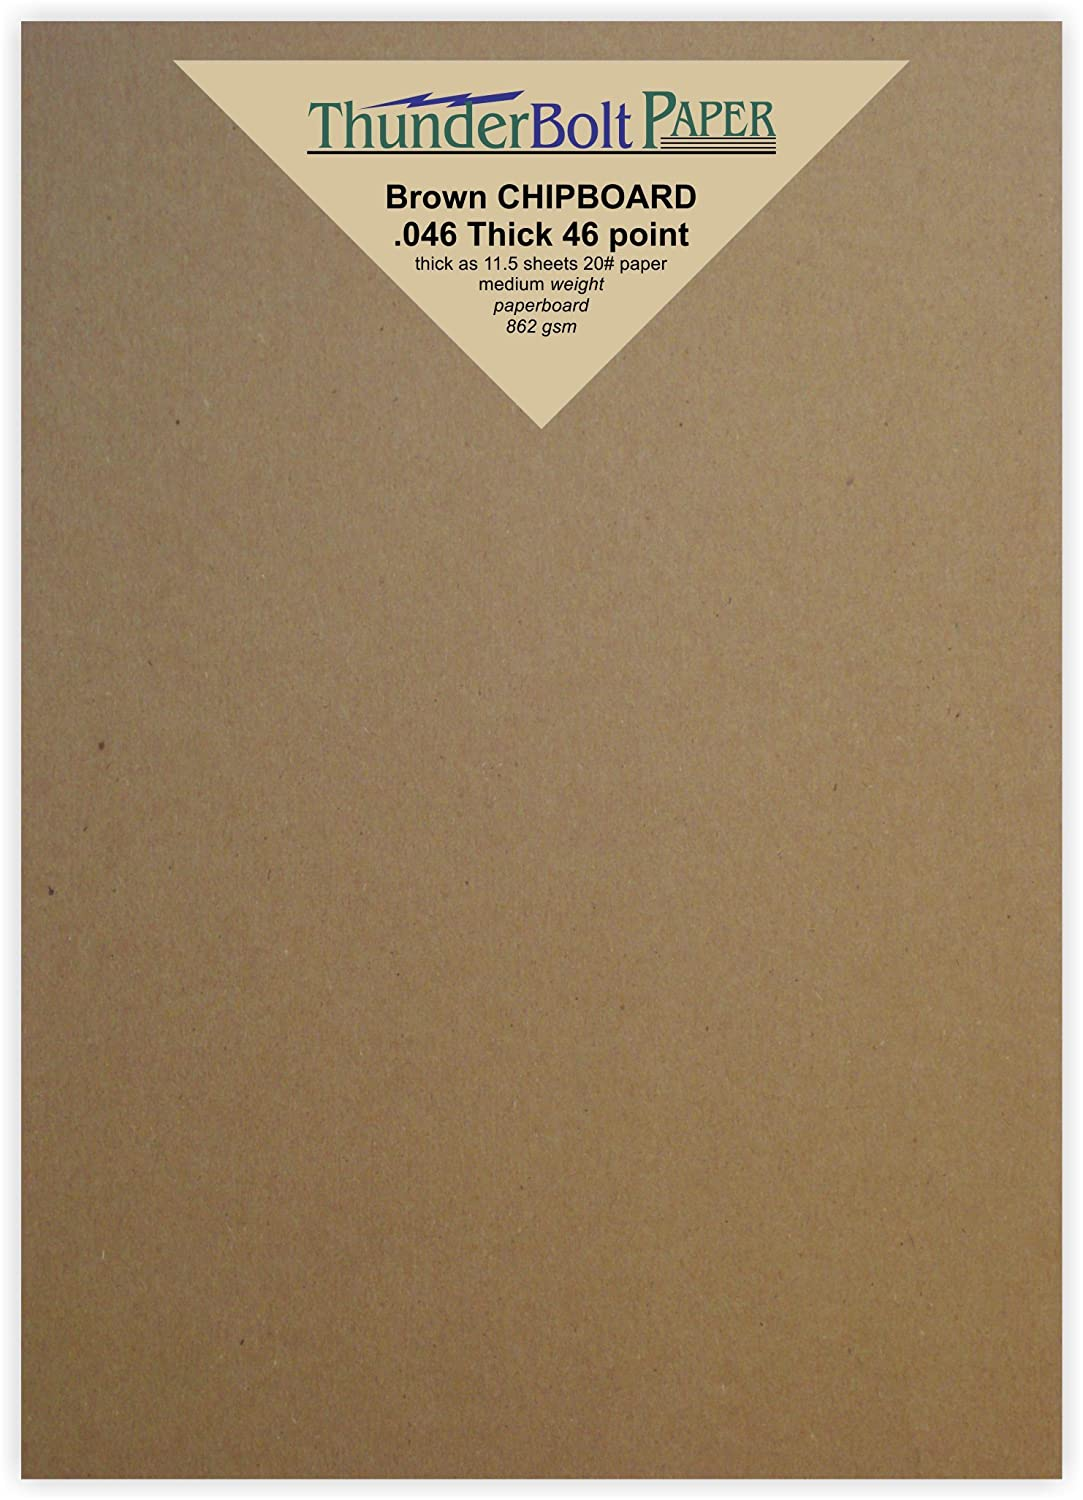 50 Sheets Chipboard 46pt (point) 5 X 7 Inches Heavy Weight Photo|Card Size .046 Caliper Thick Cardboard Craft and Packing Brown Kraft Paper Board TBP 4336978361